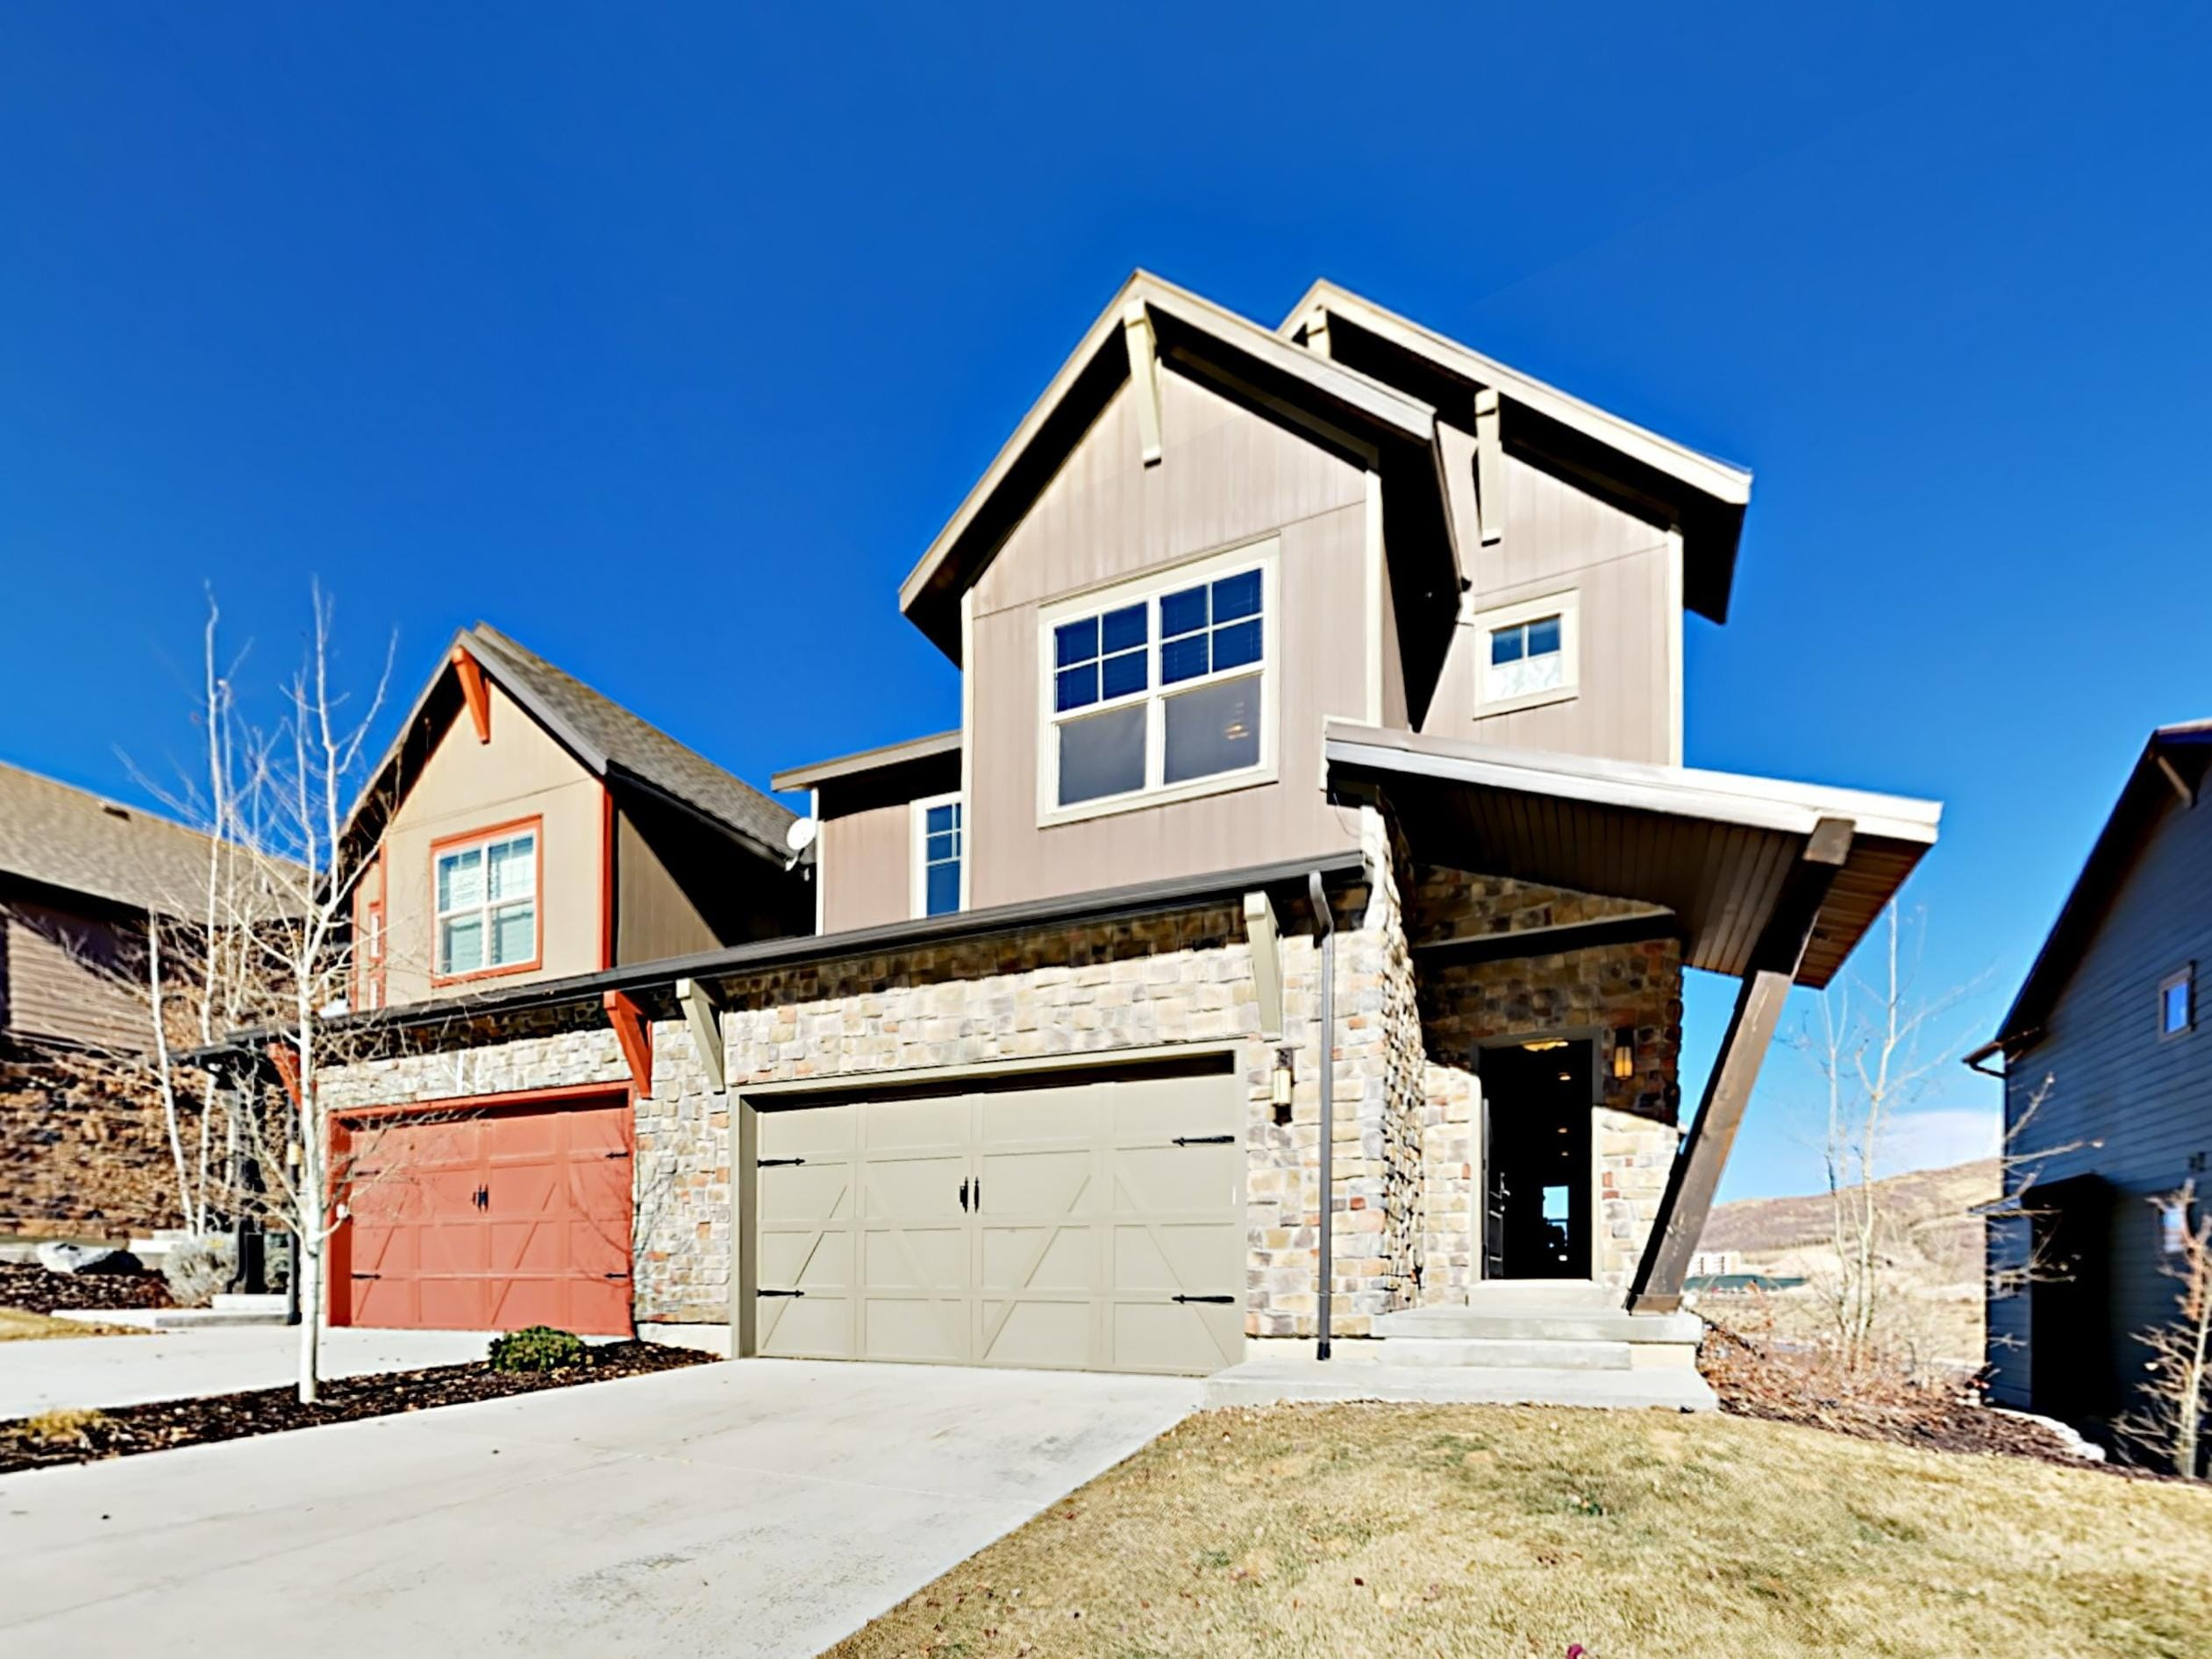 This refined townhome is within 13 minutes of Deer Valley and Park City Mountain resorts.